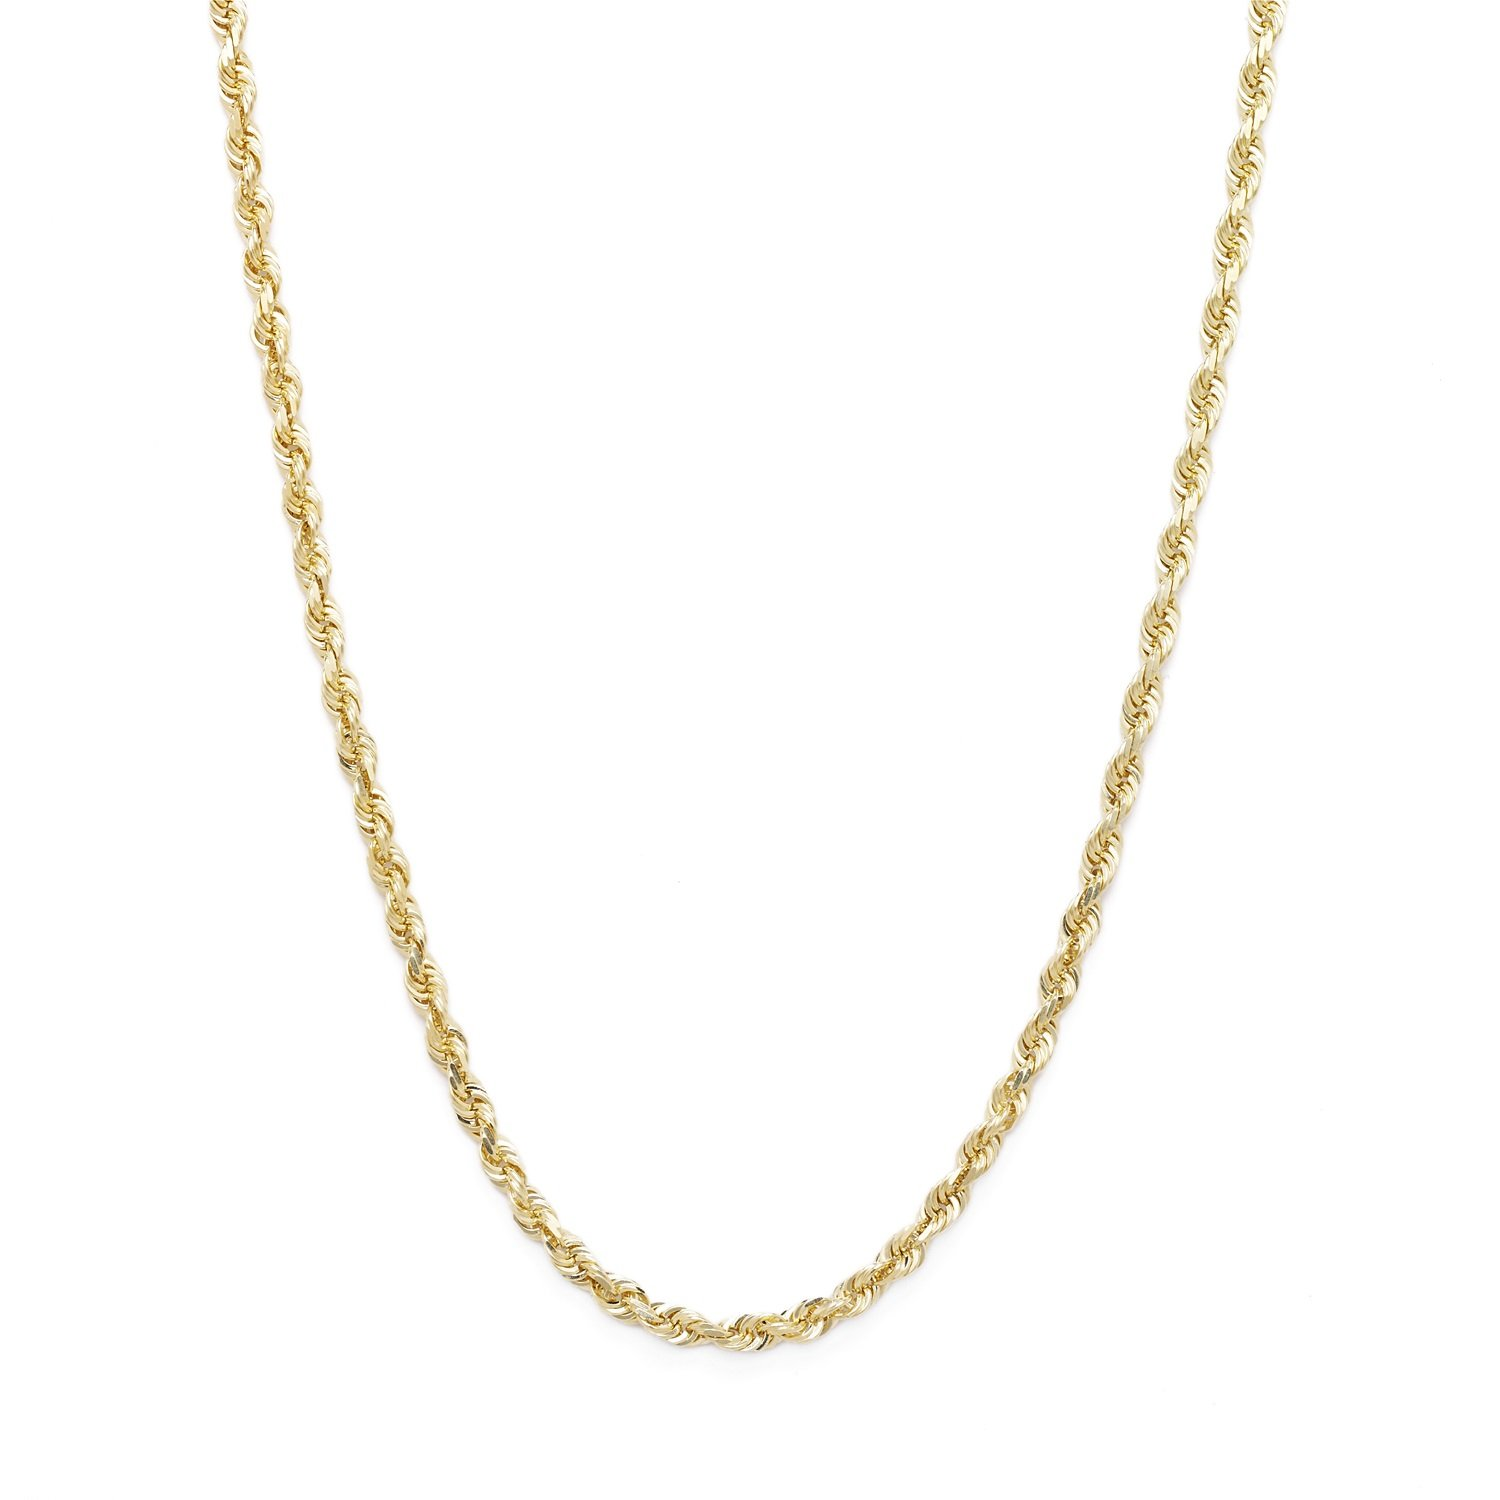 26 Inch 10k Yellow Gold Solid Diamond Cut Rope Chain Necklace, 2mm